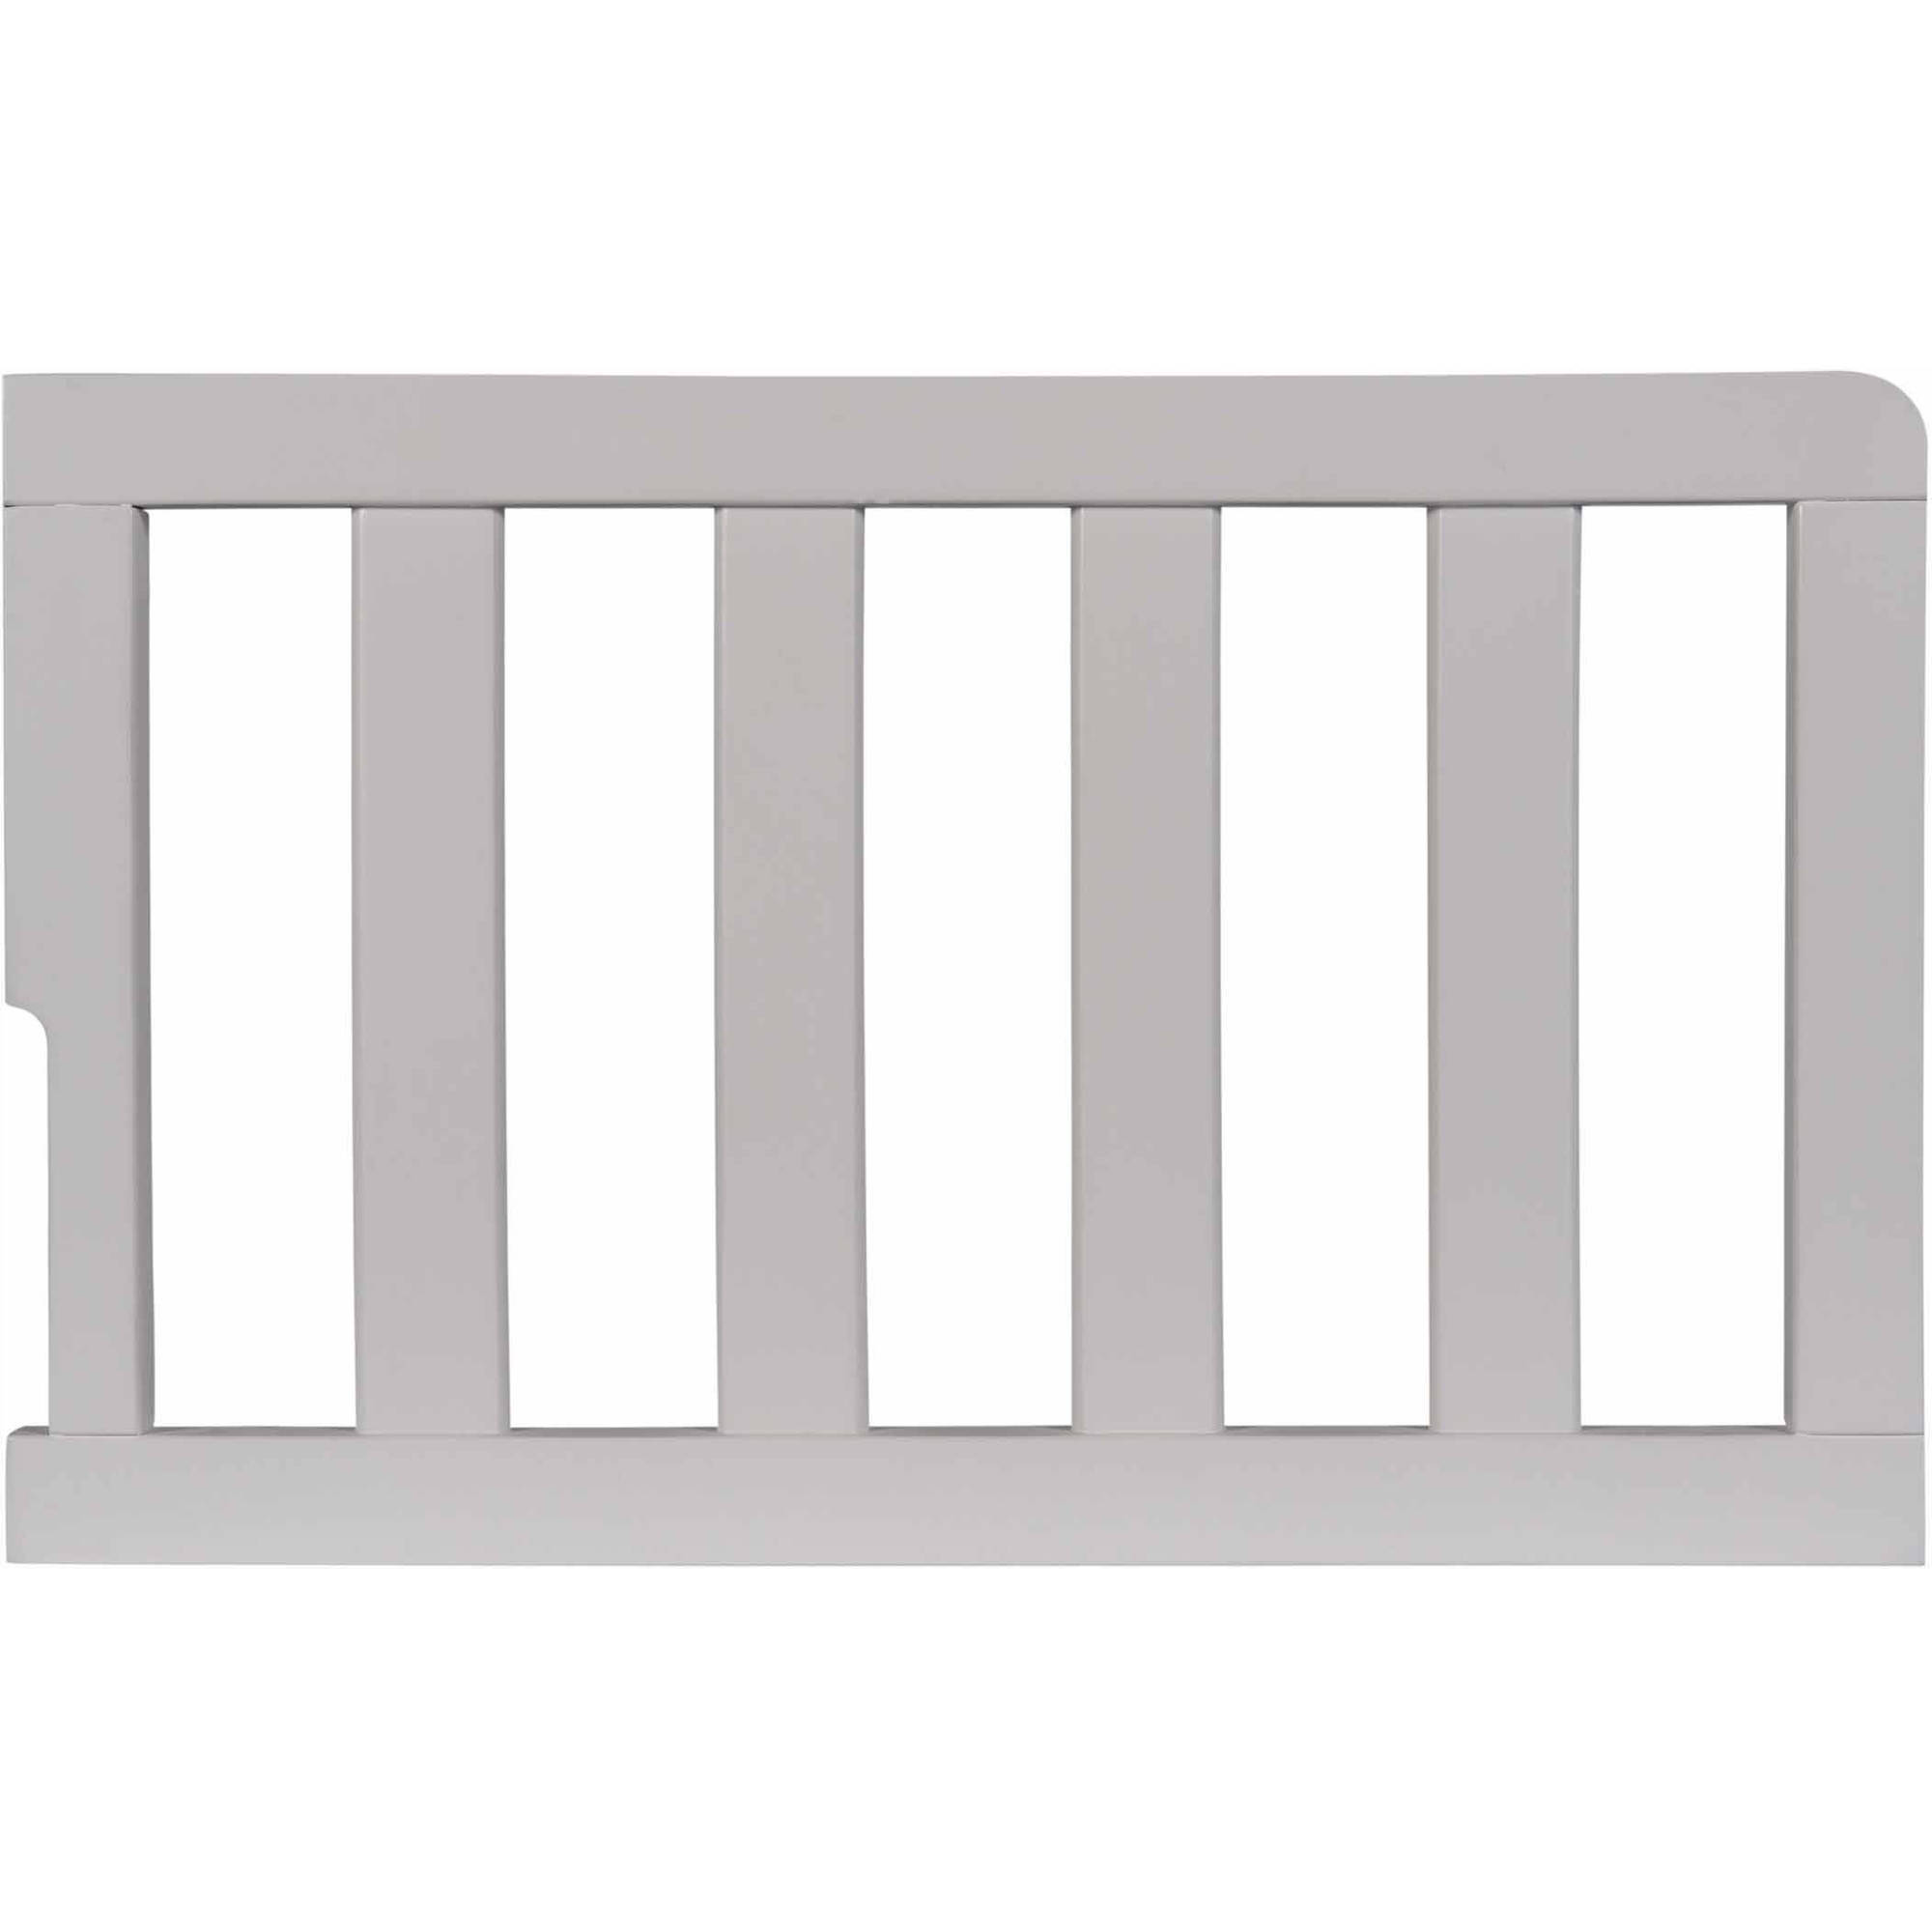 glenna jean rail langley kids cribs crib guard convertible glennajean n